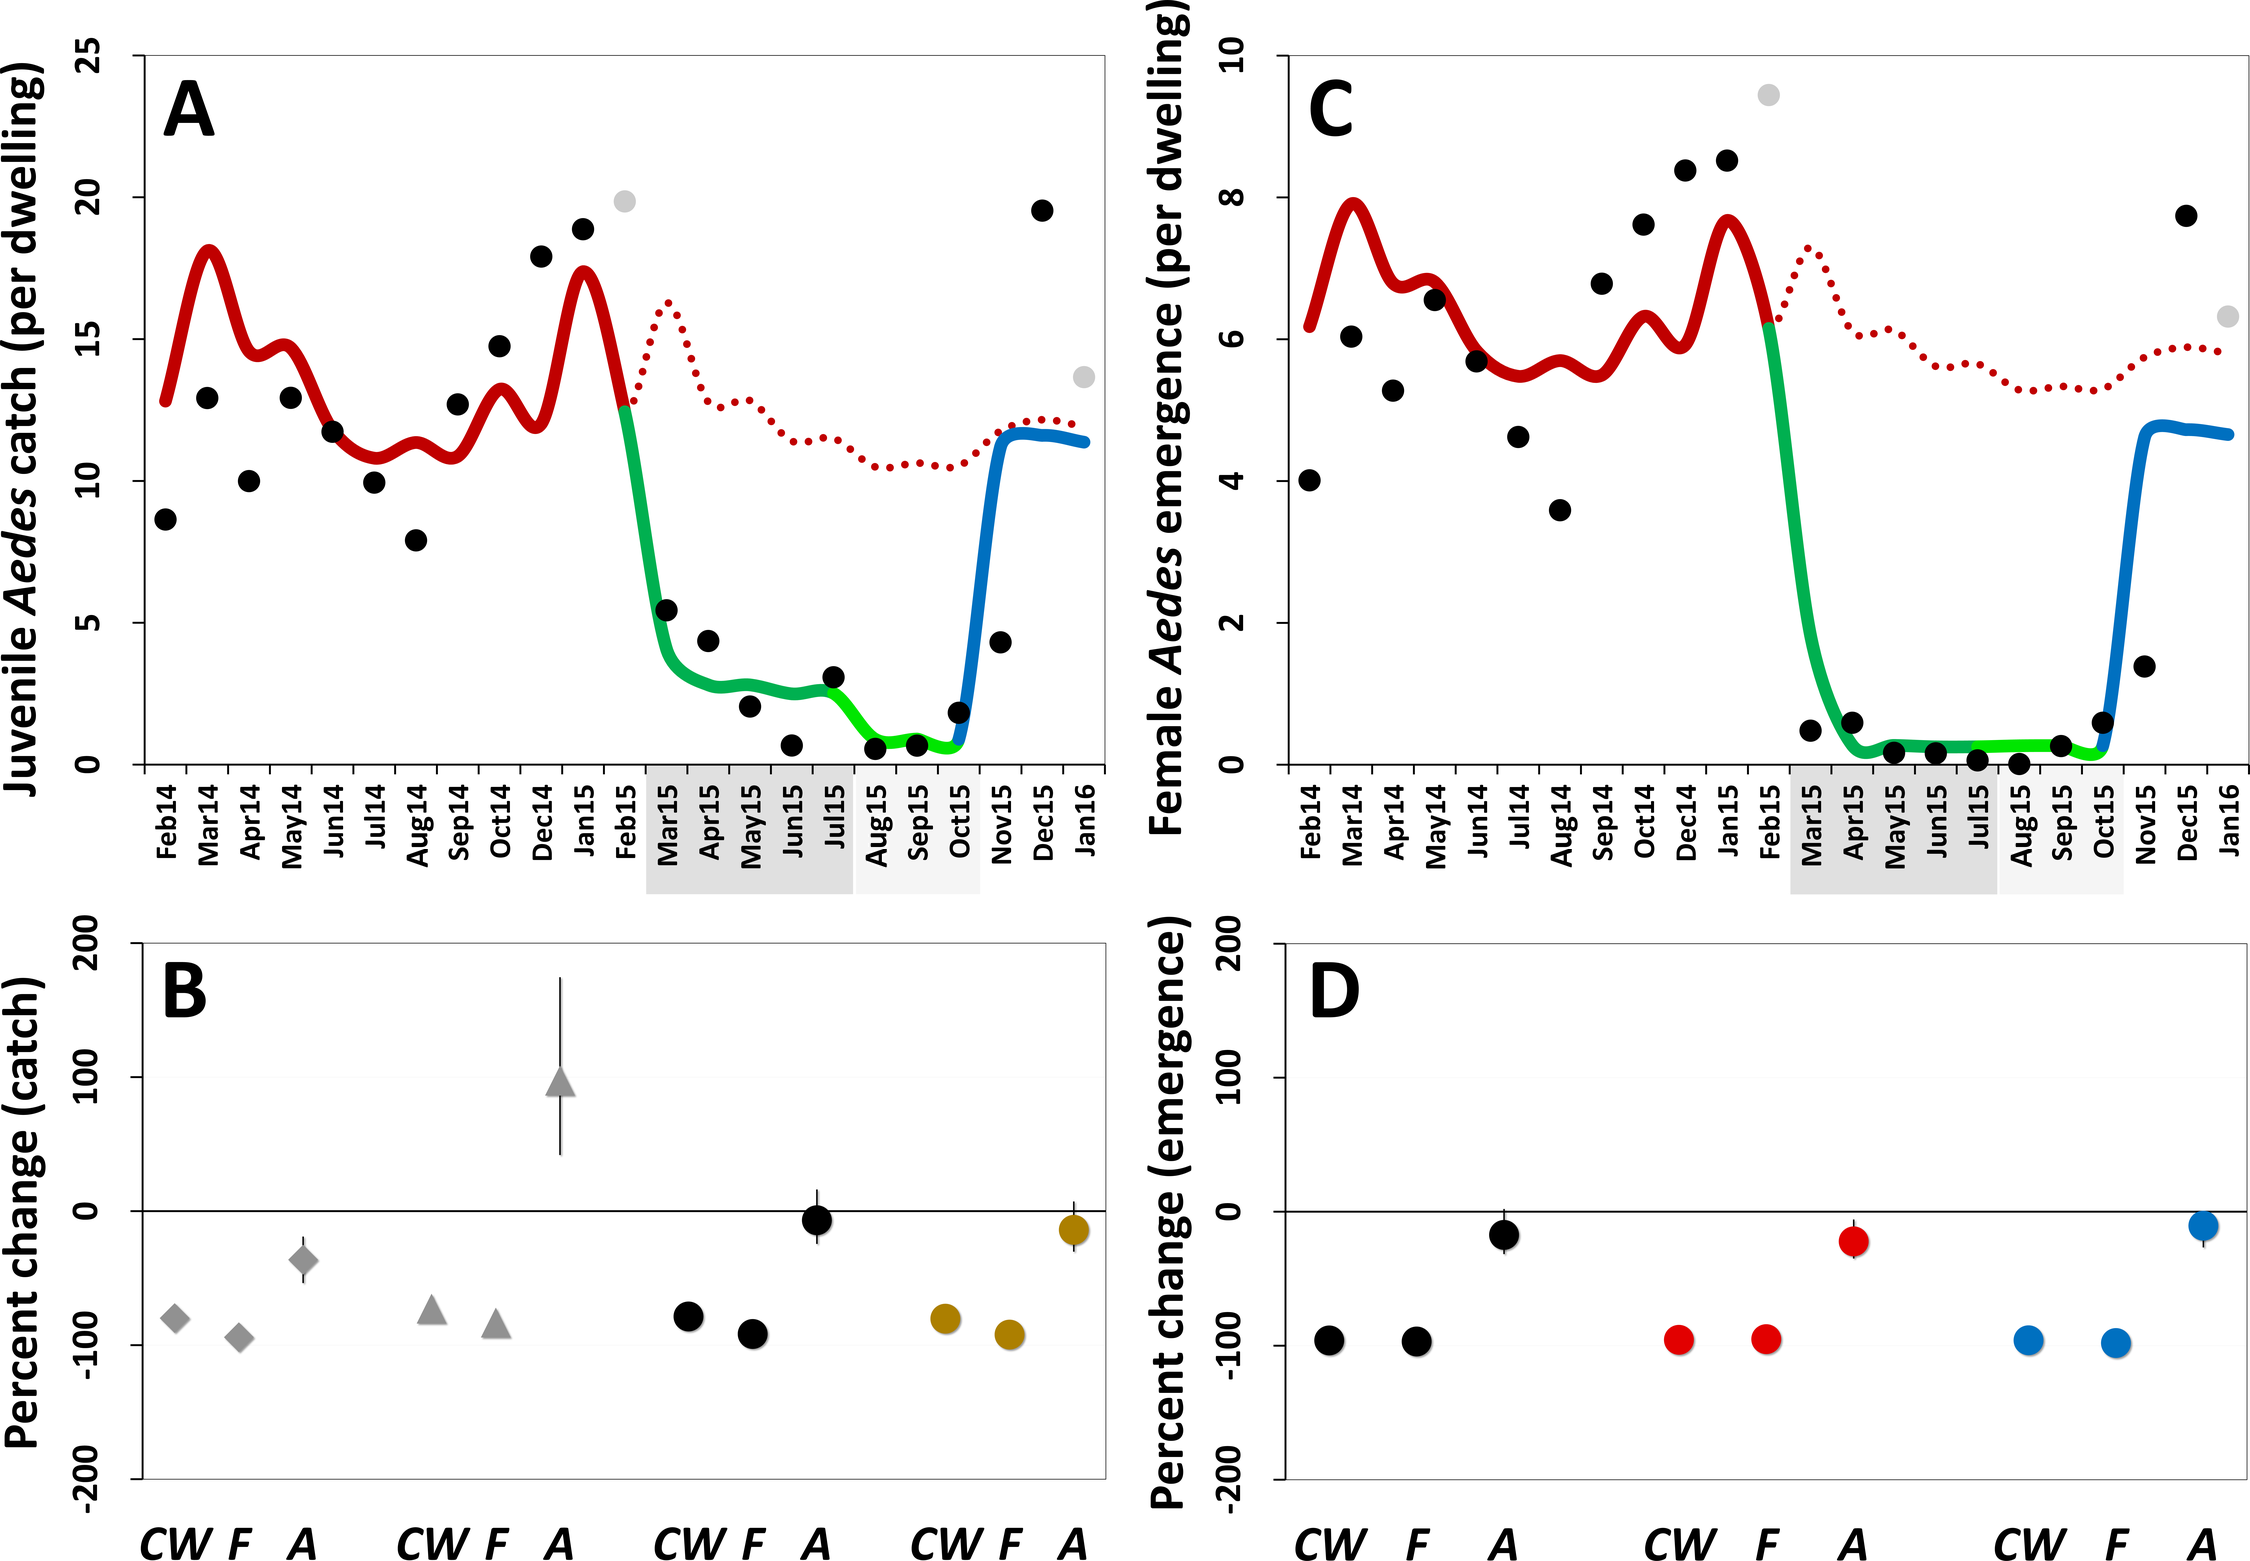 Estimated impact of mosquito-disseminated pyriproxyfen on <i>Aedes</i> populations: results of generalized linear mixed models.